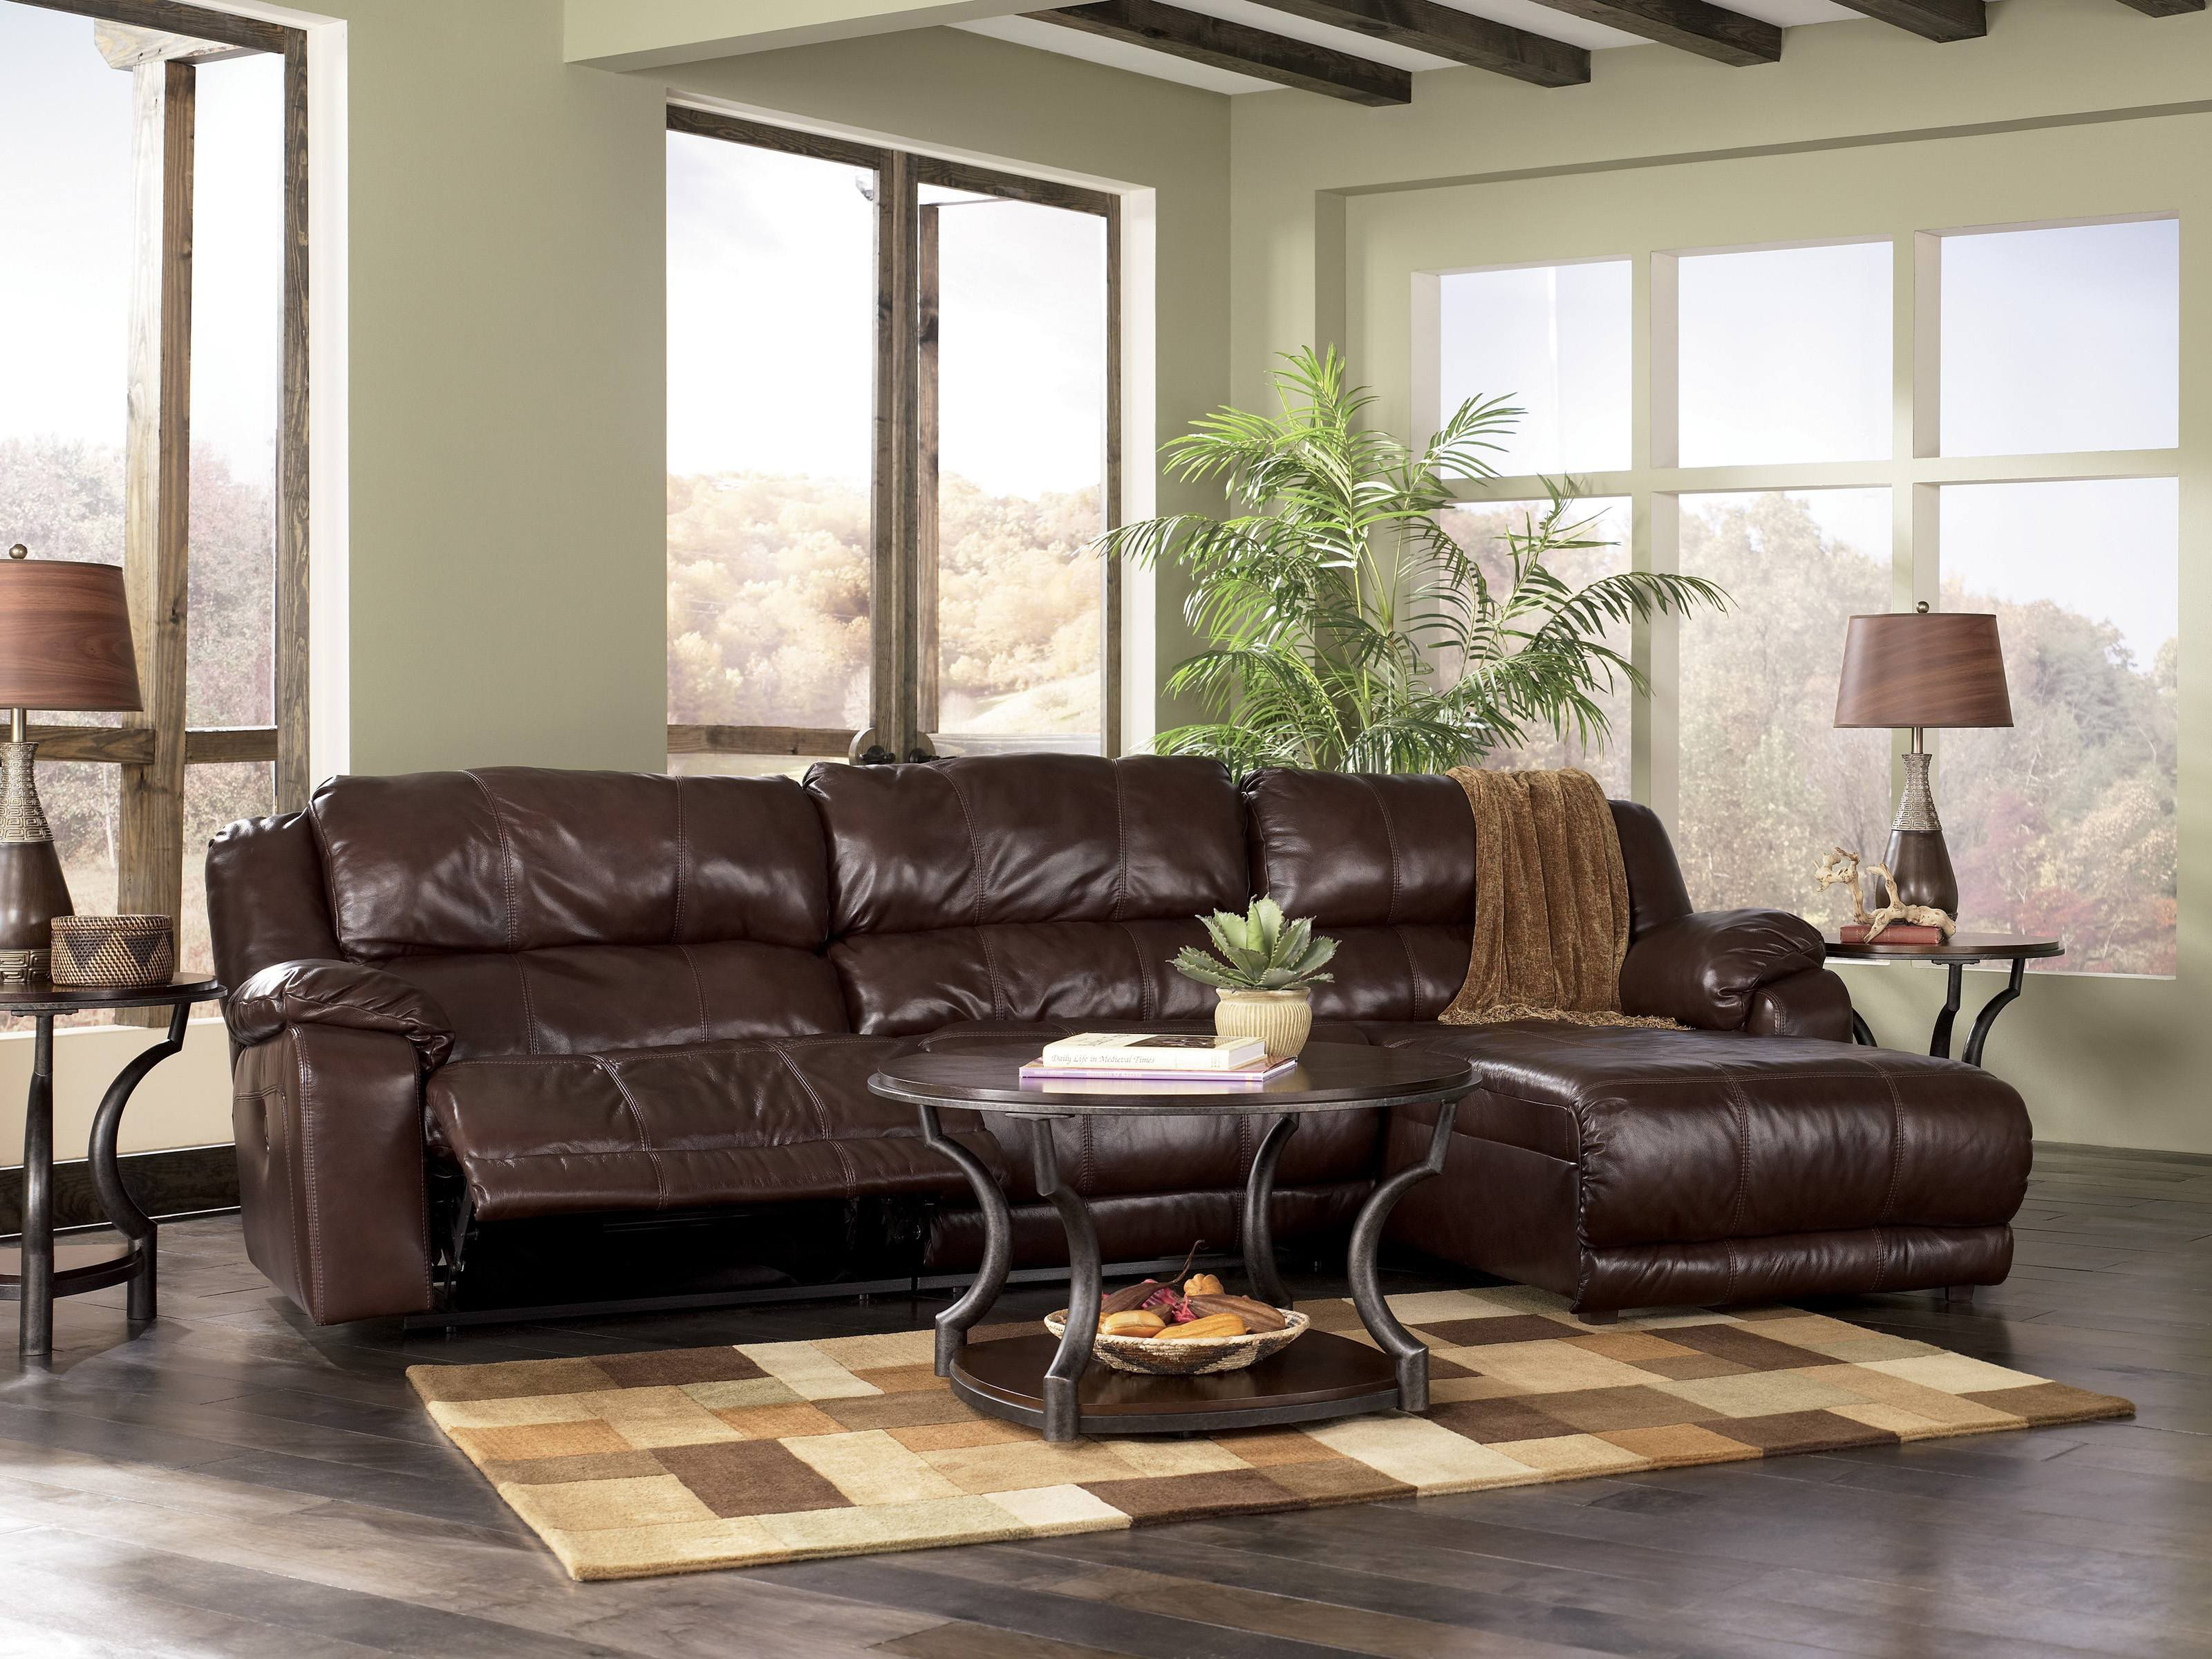 Sectional Sofas With Recliners Johnson Leather Sofa Recliner And Chaise Couches